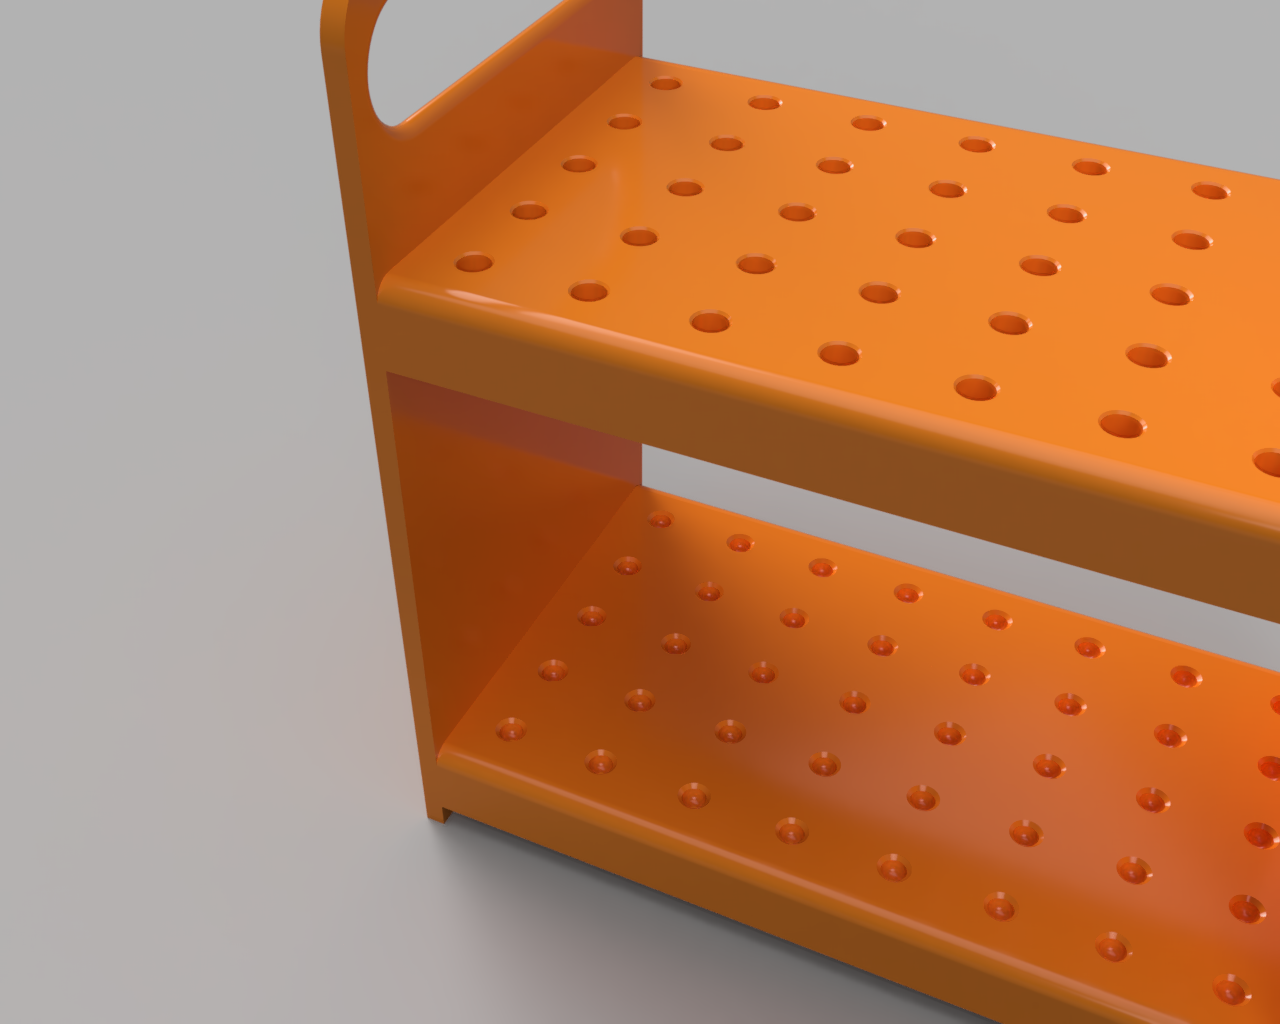 Smaller_Version_-_Deeper_bowls_2019-Nov-25_05-24-40PM-000_CustomizedView32970424117.png Download STL file NMR Tube rack - Slot Together • 3D printer template, 3D-Designs